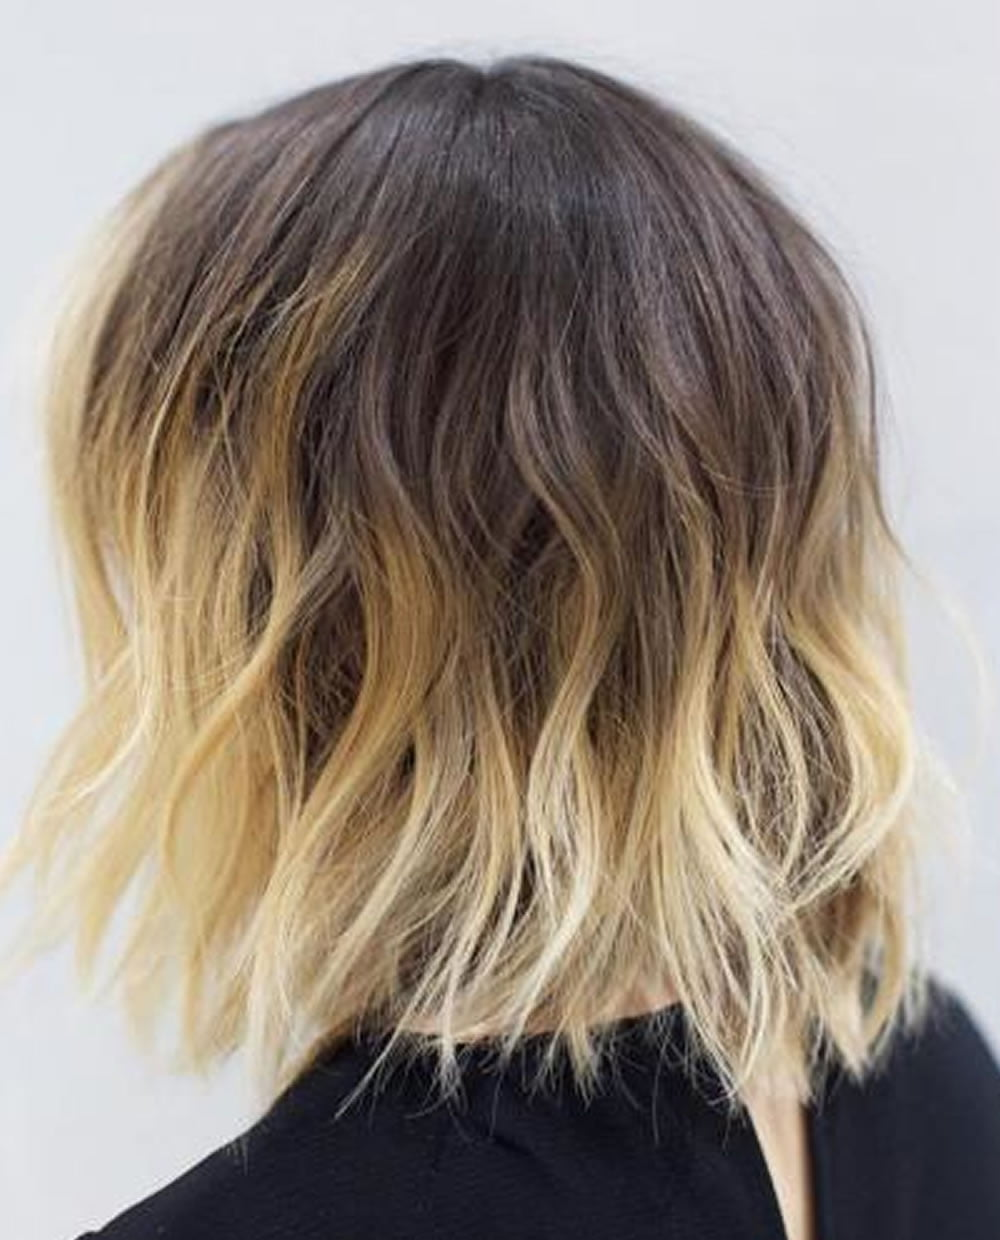 balayage short bob hairstyles haircuts for 2018. Black Bedroom Furniture Sets. Home Design Ideas